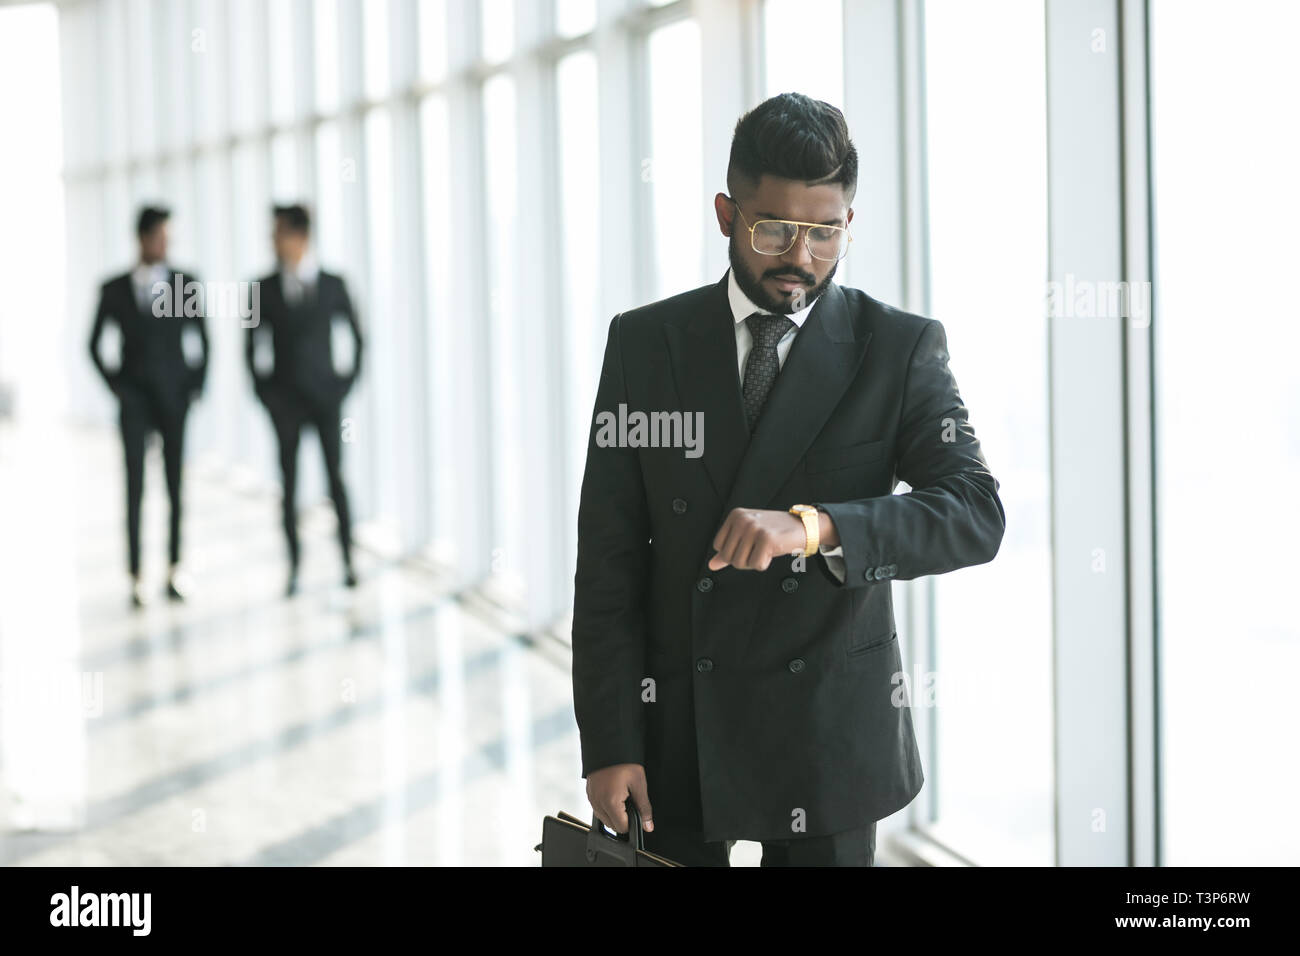 Busy Businessman Looking At Wristwatch While Hurrying On